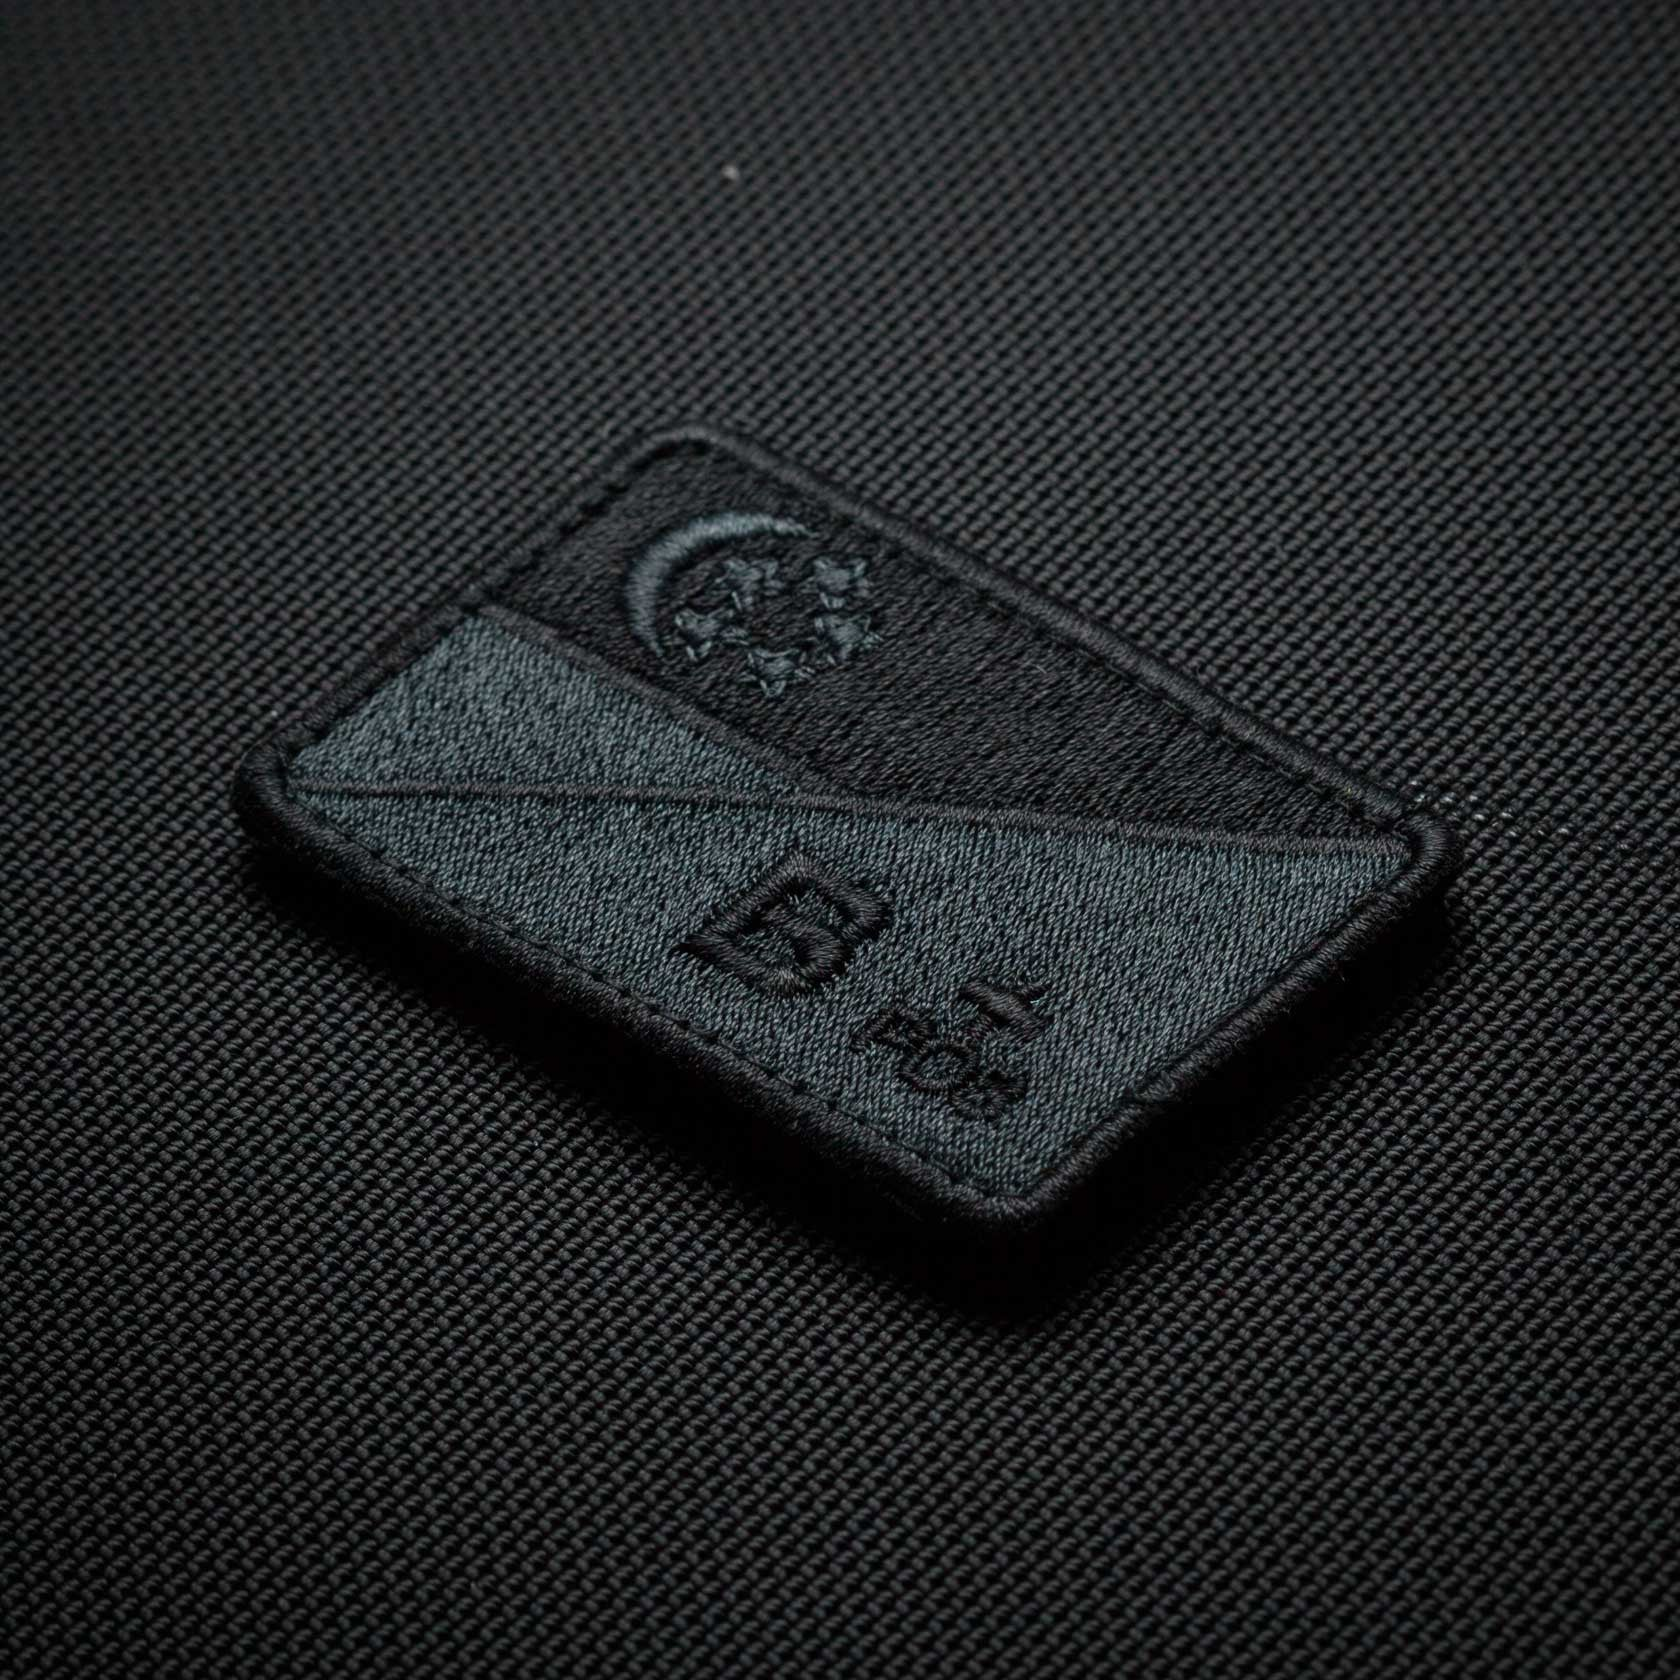 SG Flag B+ Blackout